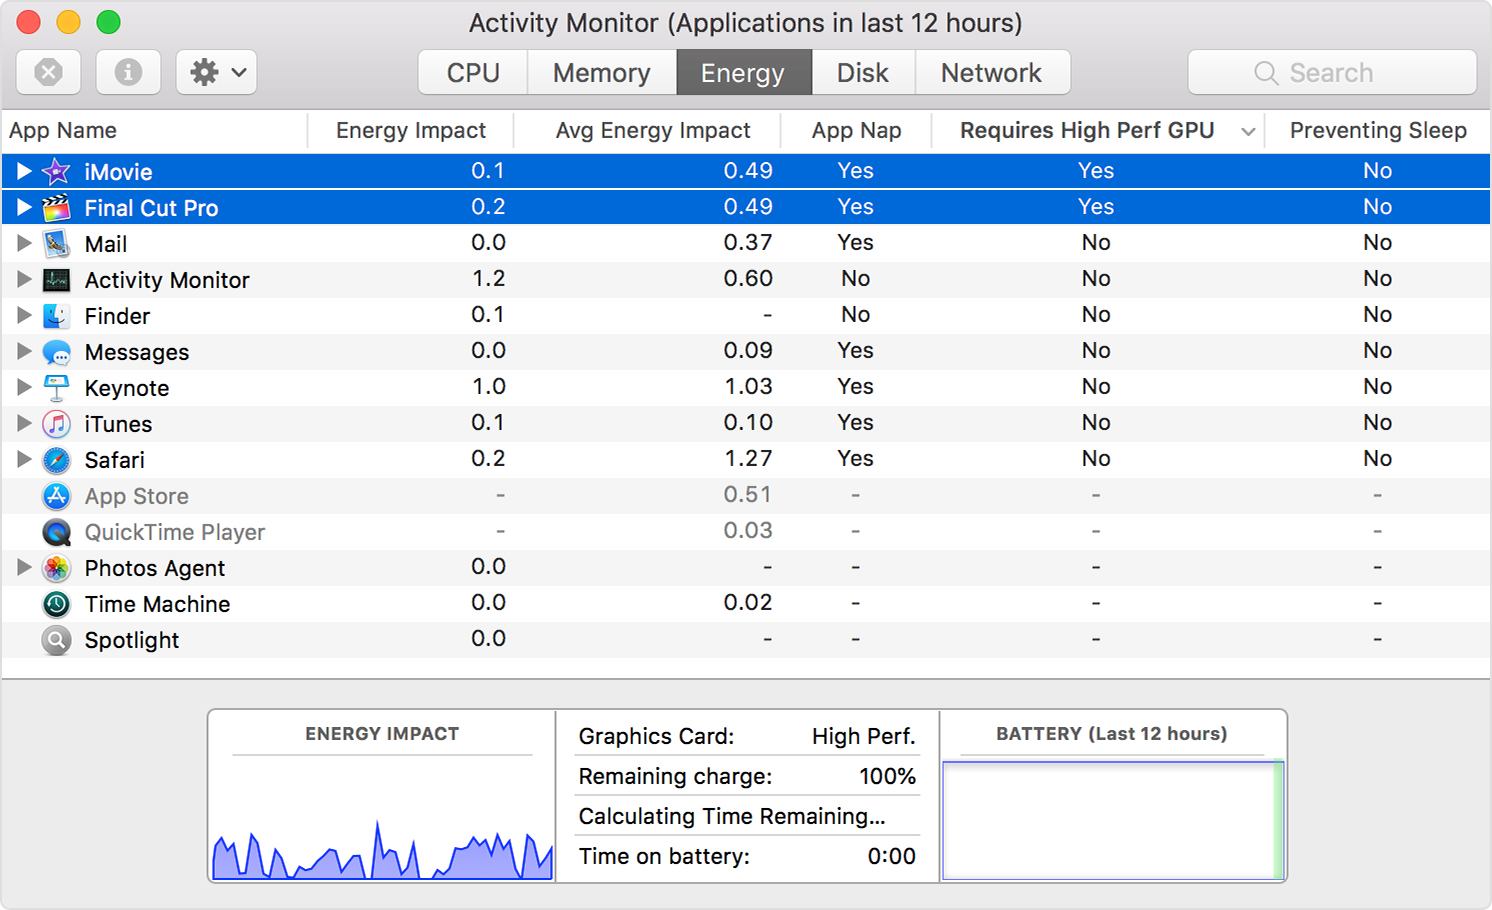 the Energy tab of Activity Monitor showing iMovie and Final Cut Pro in the list with Yes showing in the Requires High Perf GPU column.